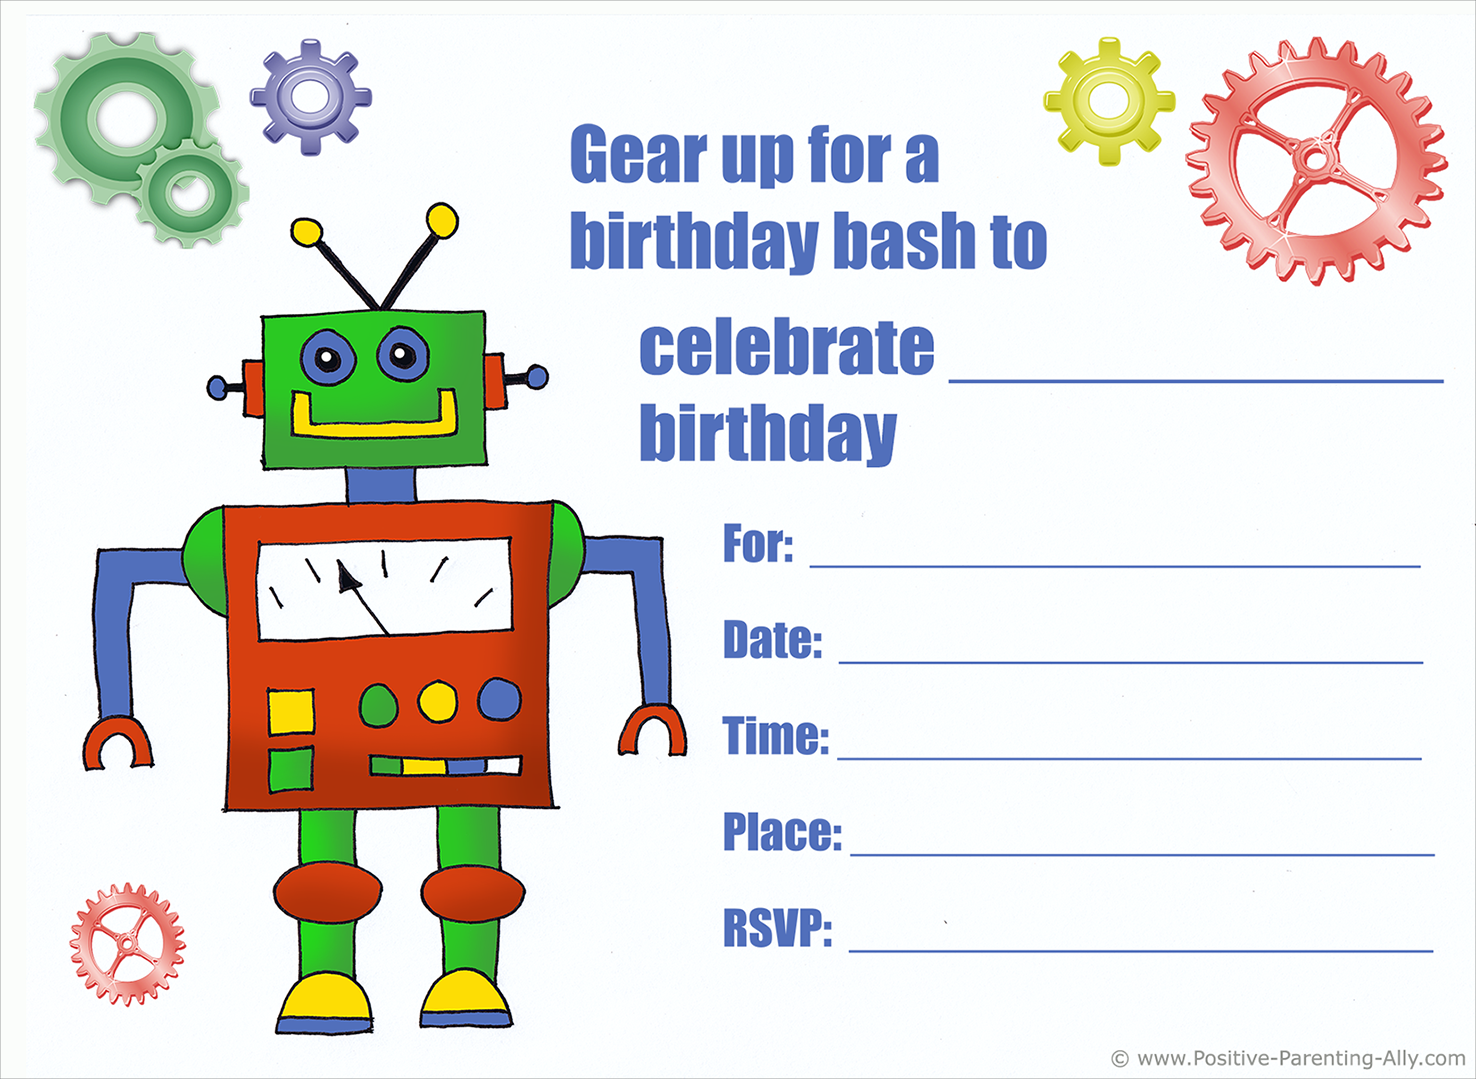 Free printable birthday invite with robot and cog wheels.